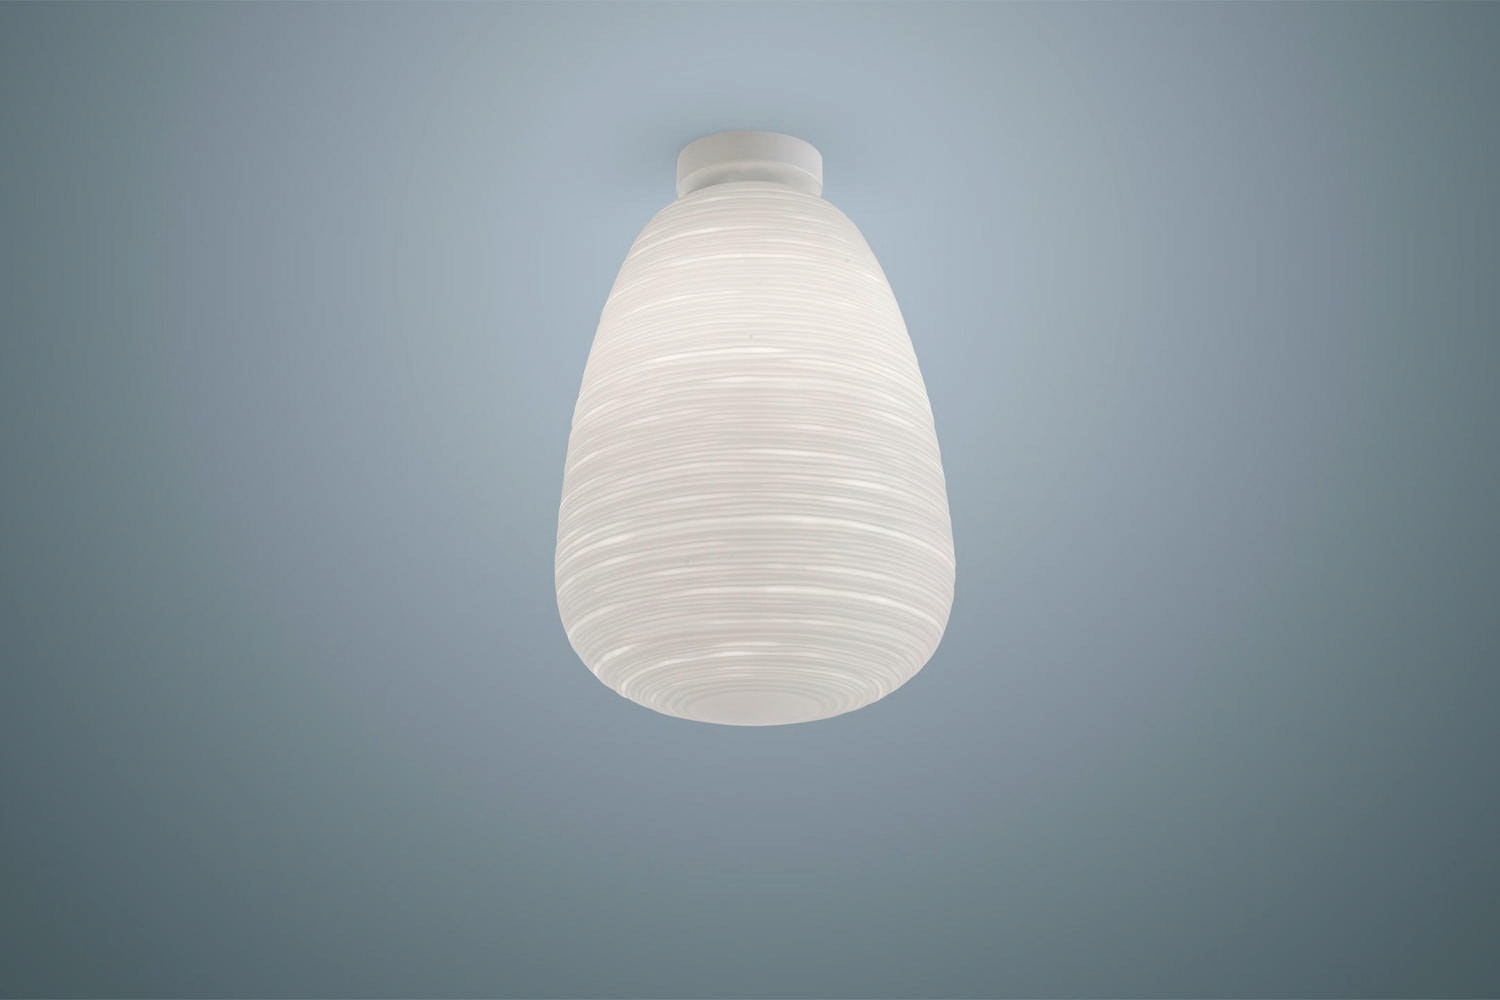 Rituals Ceiling Lamp by Ludovica & Roberto Palomba for Foscarini